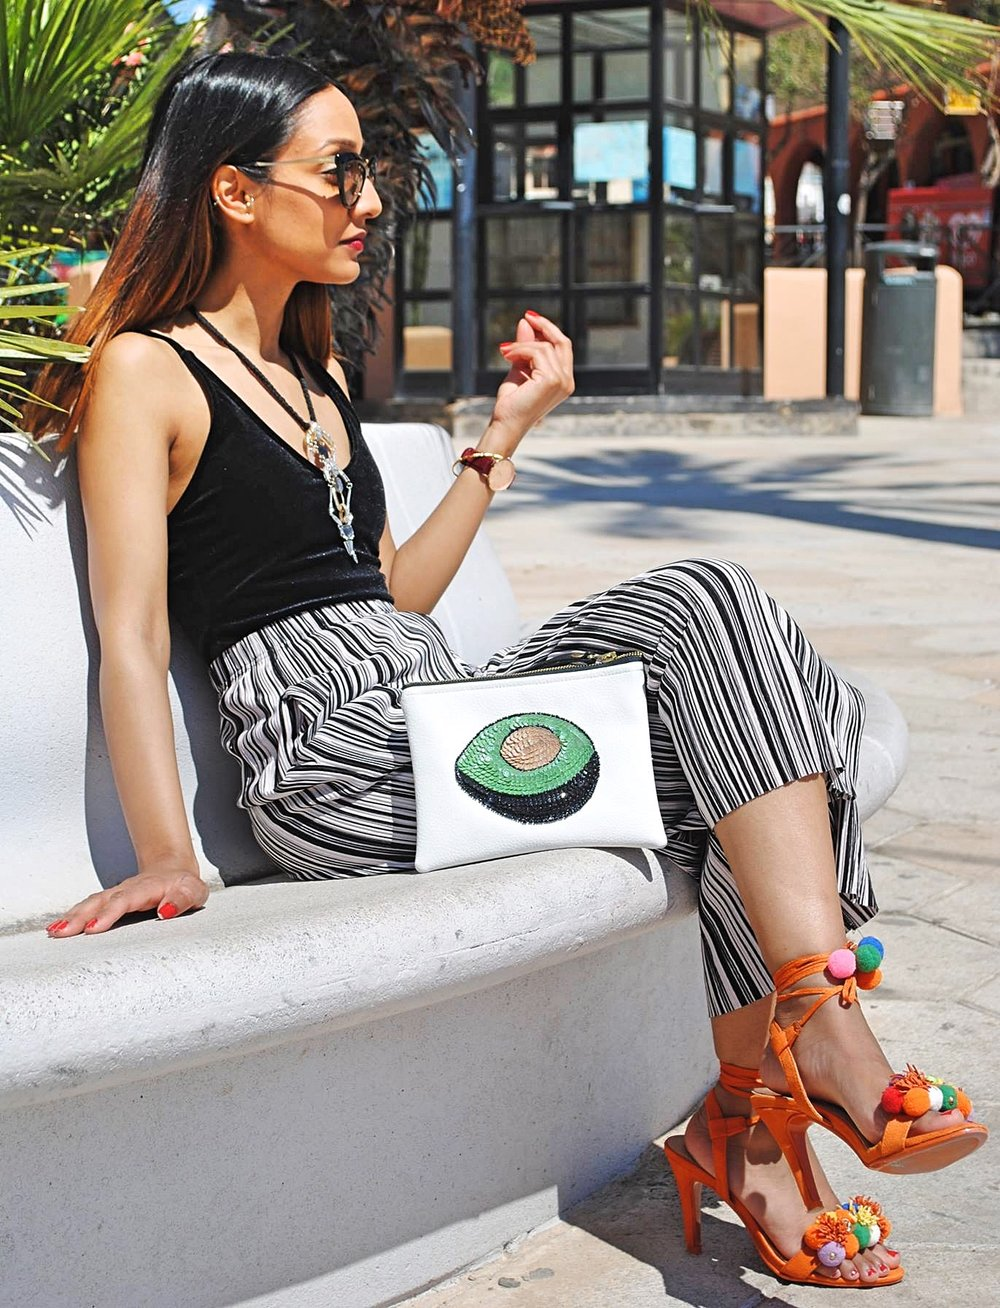 Tulum White Avocado clutch, ZAFUL BLACK VELVET BODYSUIT, CONSTANTINE STATEMENT NECKLACE BY DAY BIRGER ET MIKKELSON